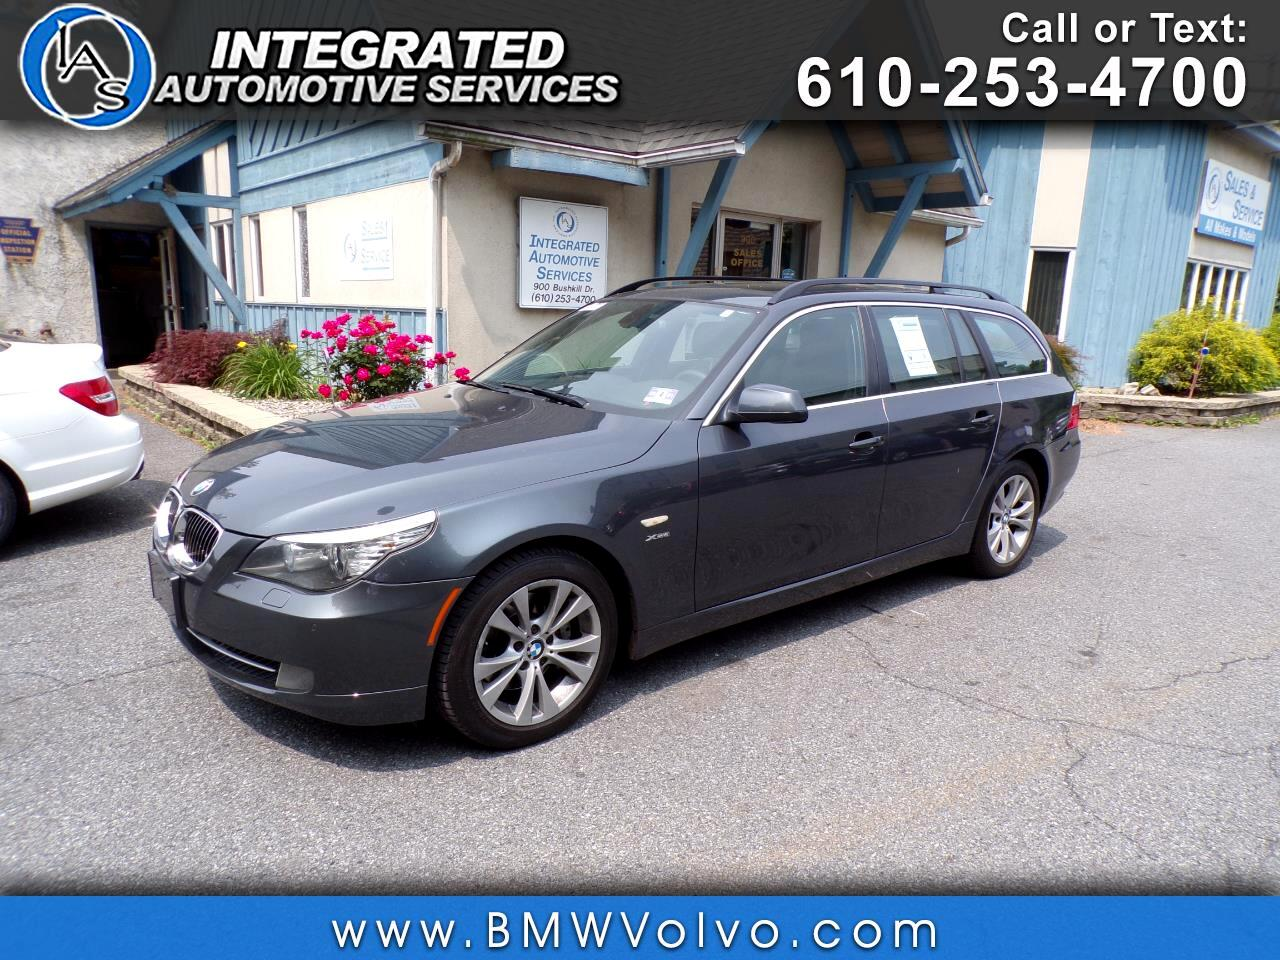 2010 BMW 5-Series Sport Wagon 535i xDrive